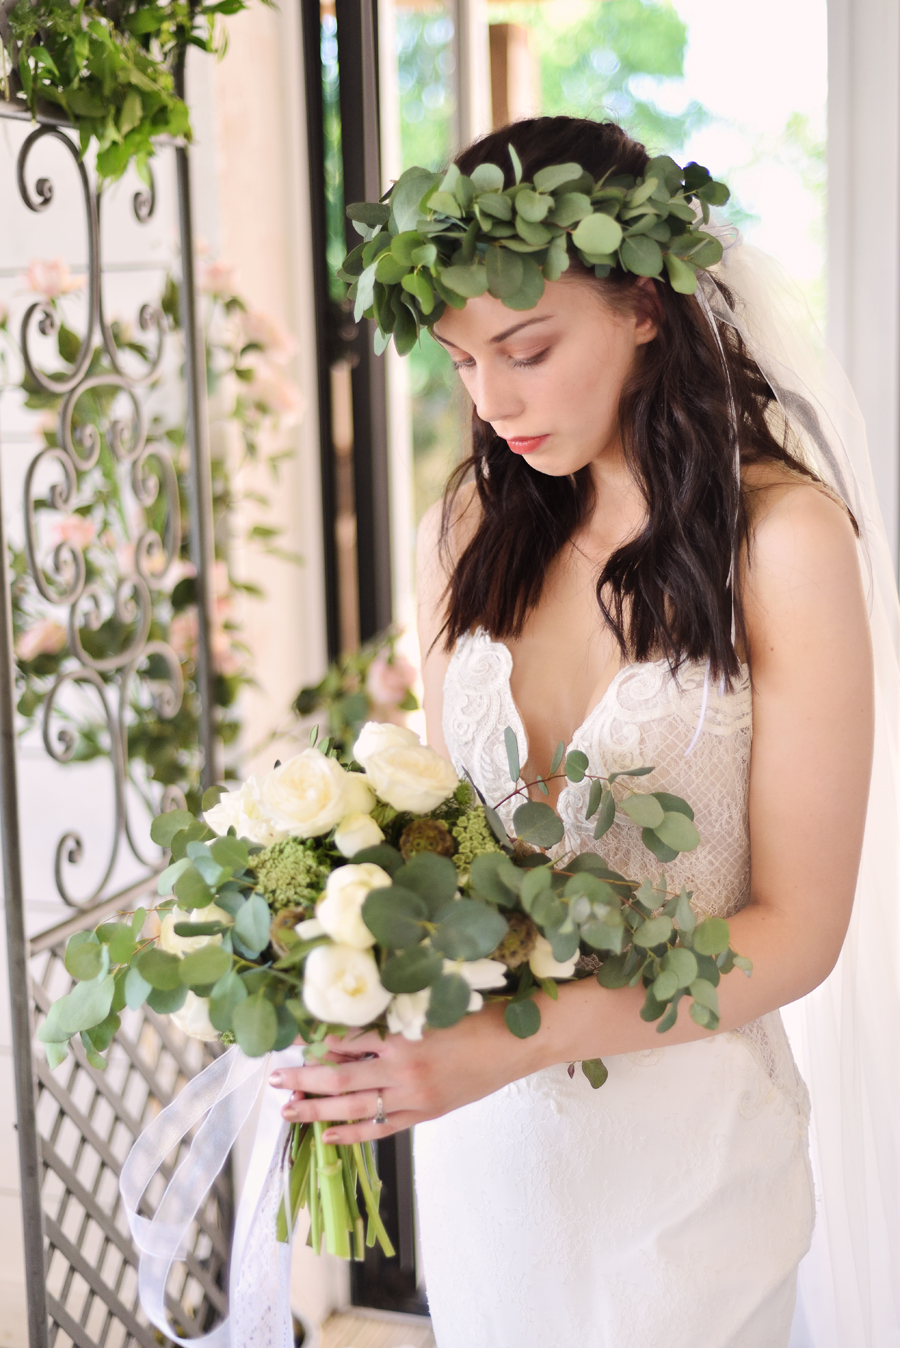 Marina Walker Photography's styled shoot with succulents and affordable details for a minimalist boho wedding (23)